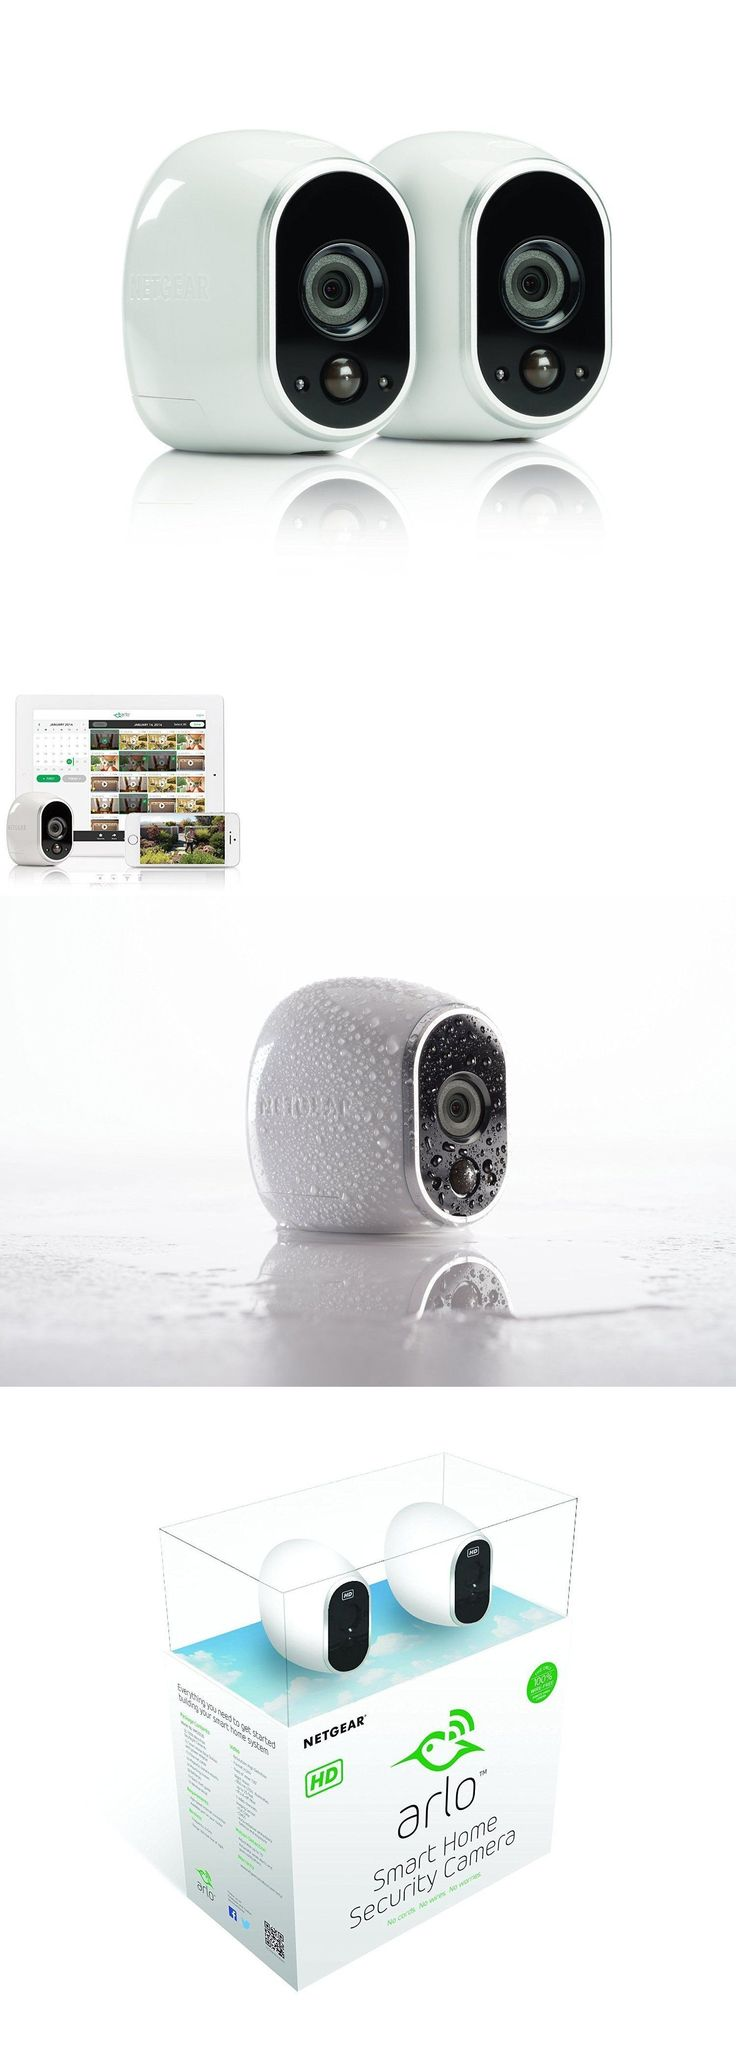 Surveillance Security Systems: New! Arlo Smart Home Security Camera System - 2 Hd, 100% Wire-Free By Netgear BUY IT NOW ONLY: $251.0